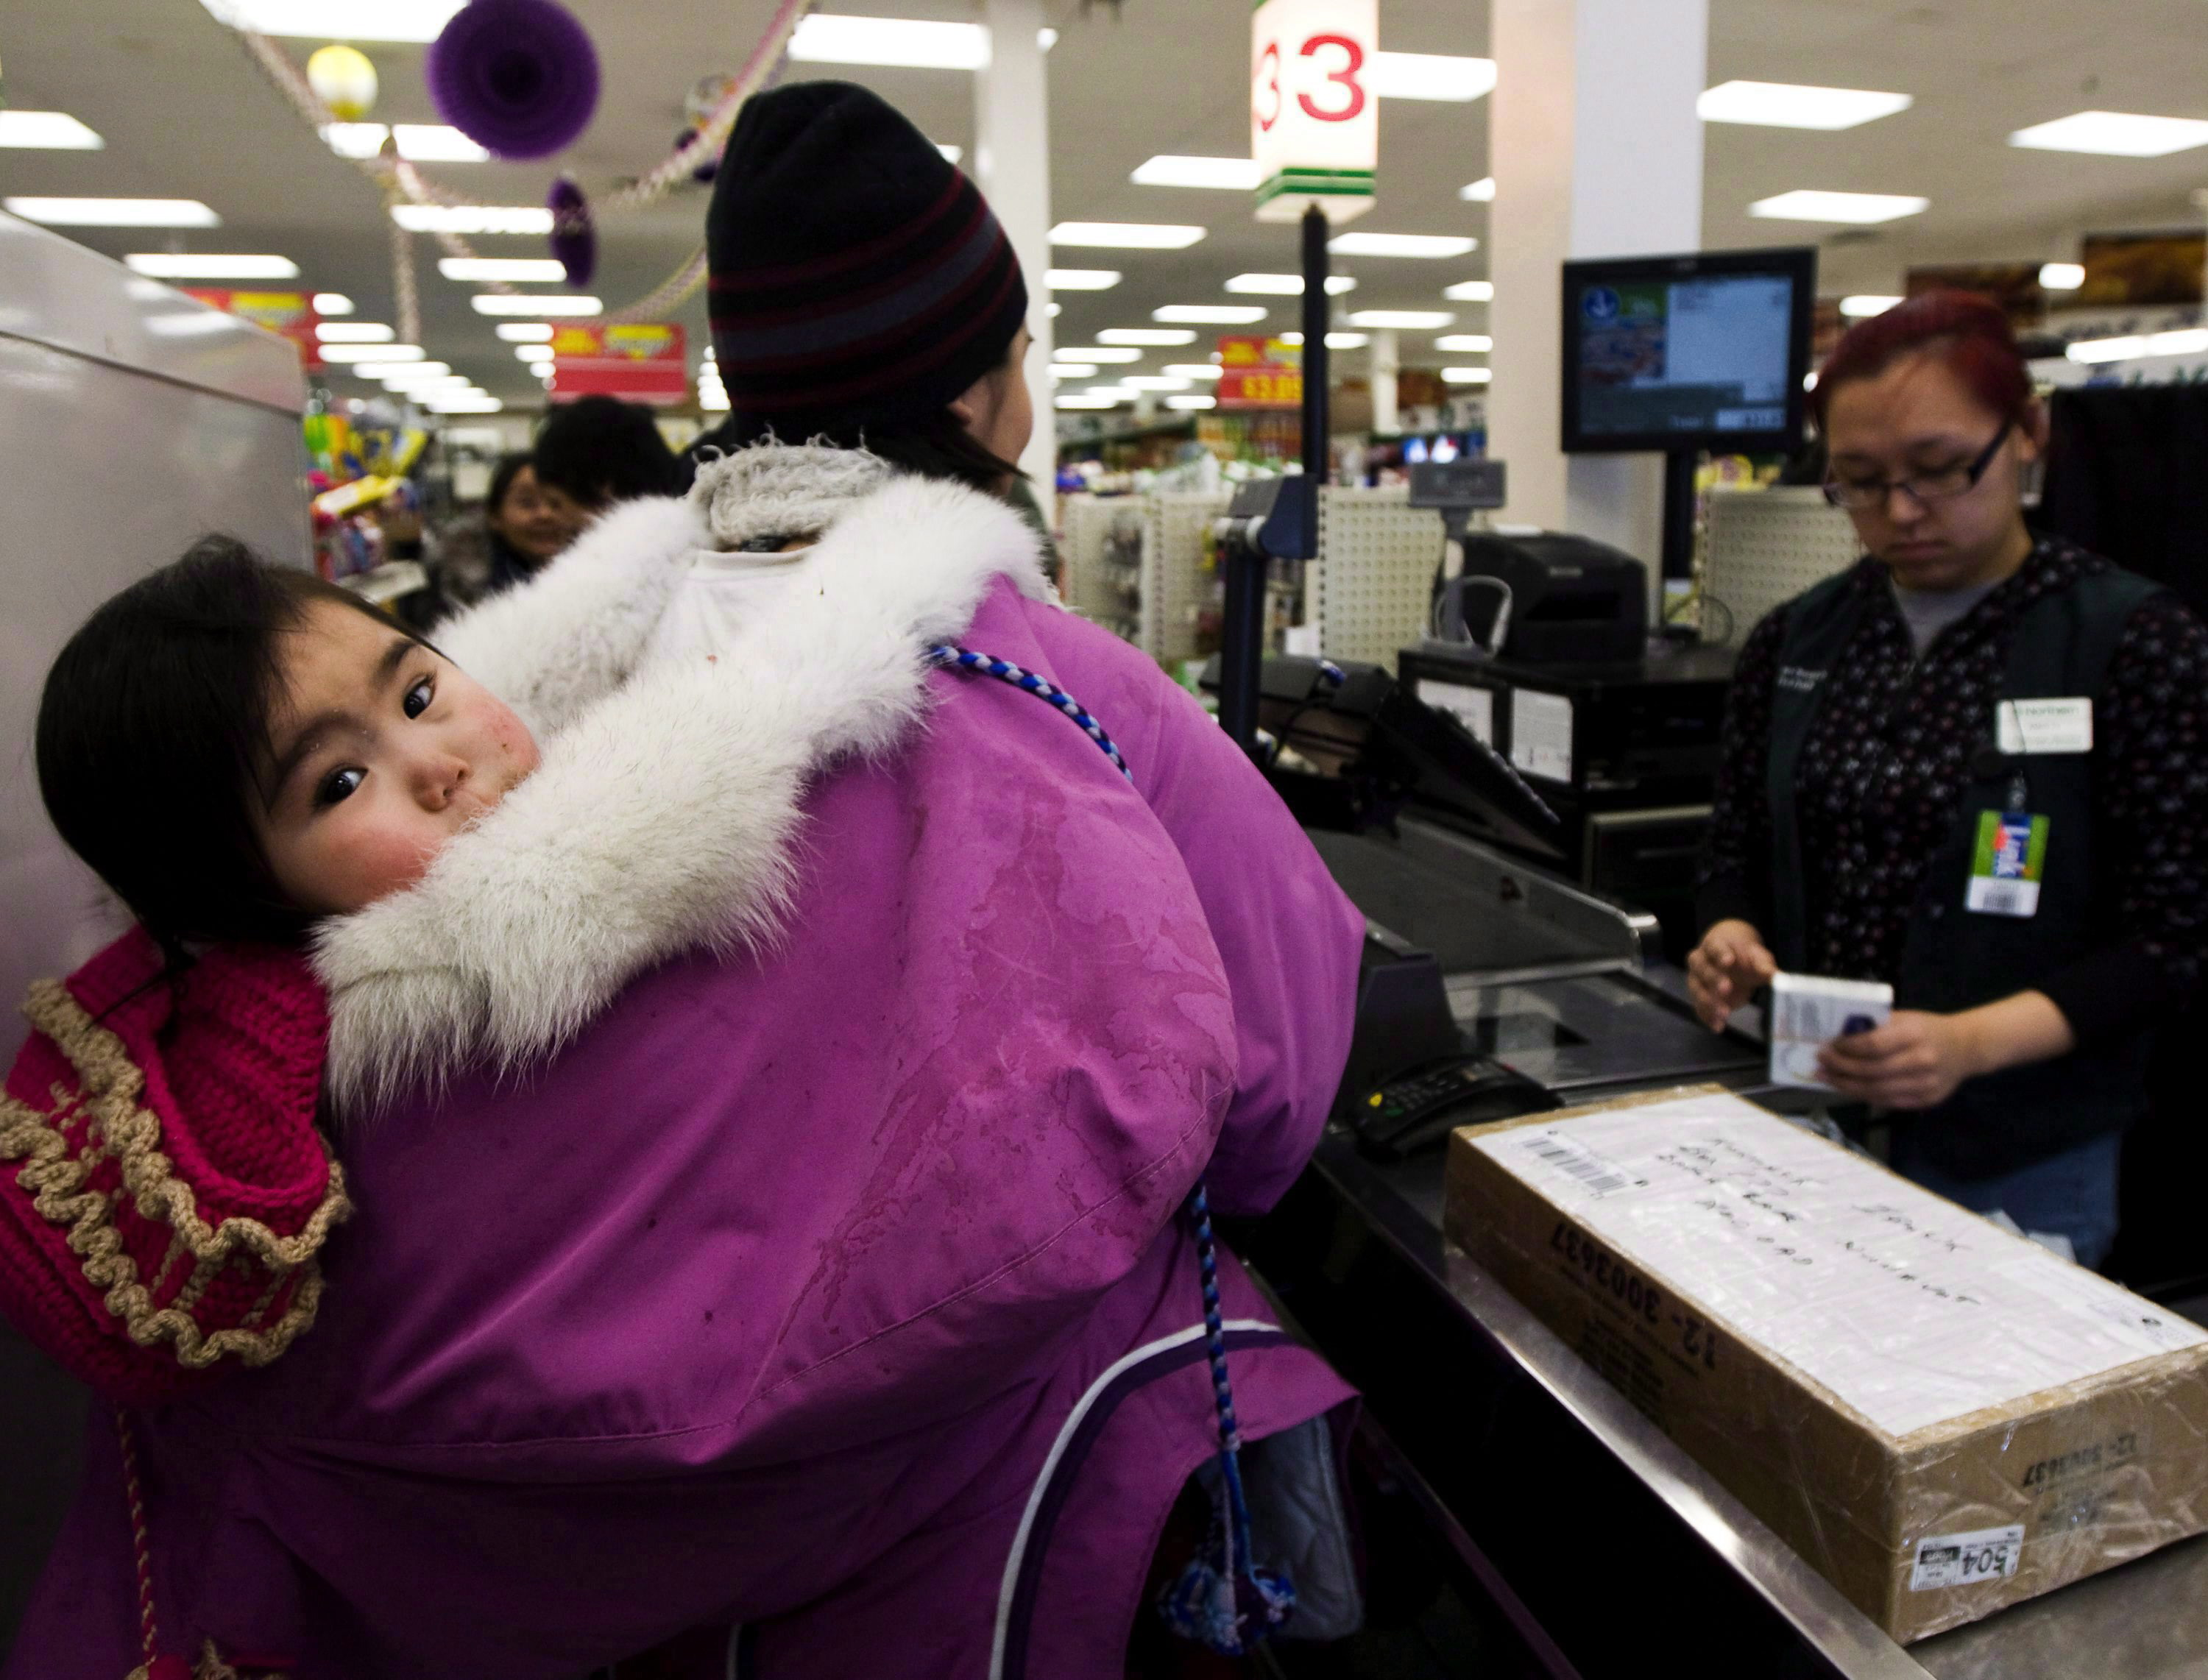 Food security is an issue in communities across the North. Here, Pauline Kadjuk, 1, is carried in a Amautik by her mother Brittany Ikulik, middle, while paying for groceries at the Northern store in the small town of Baker Lake, Nunavut. (Nathan Denette / The Canadian Press)